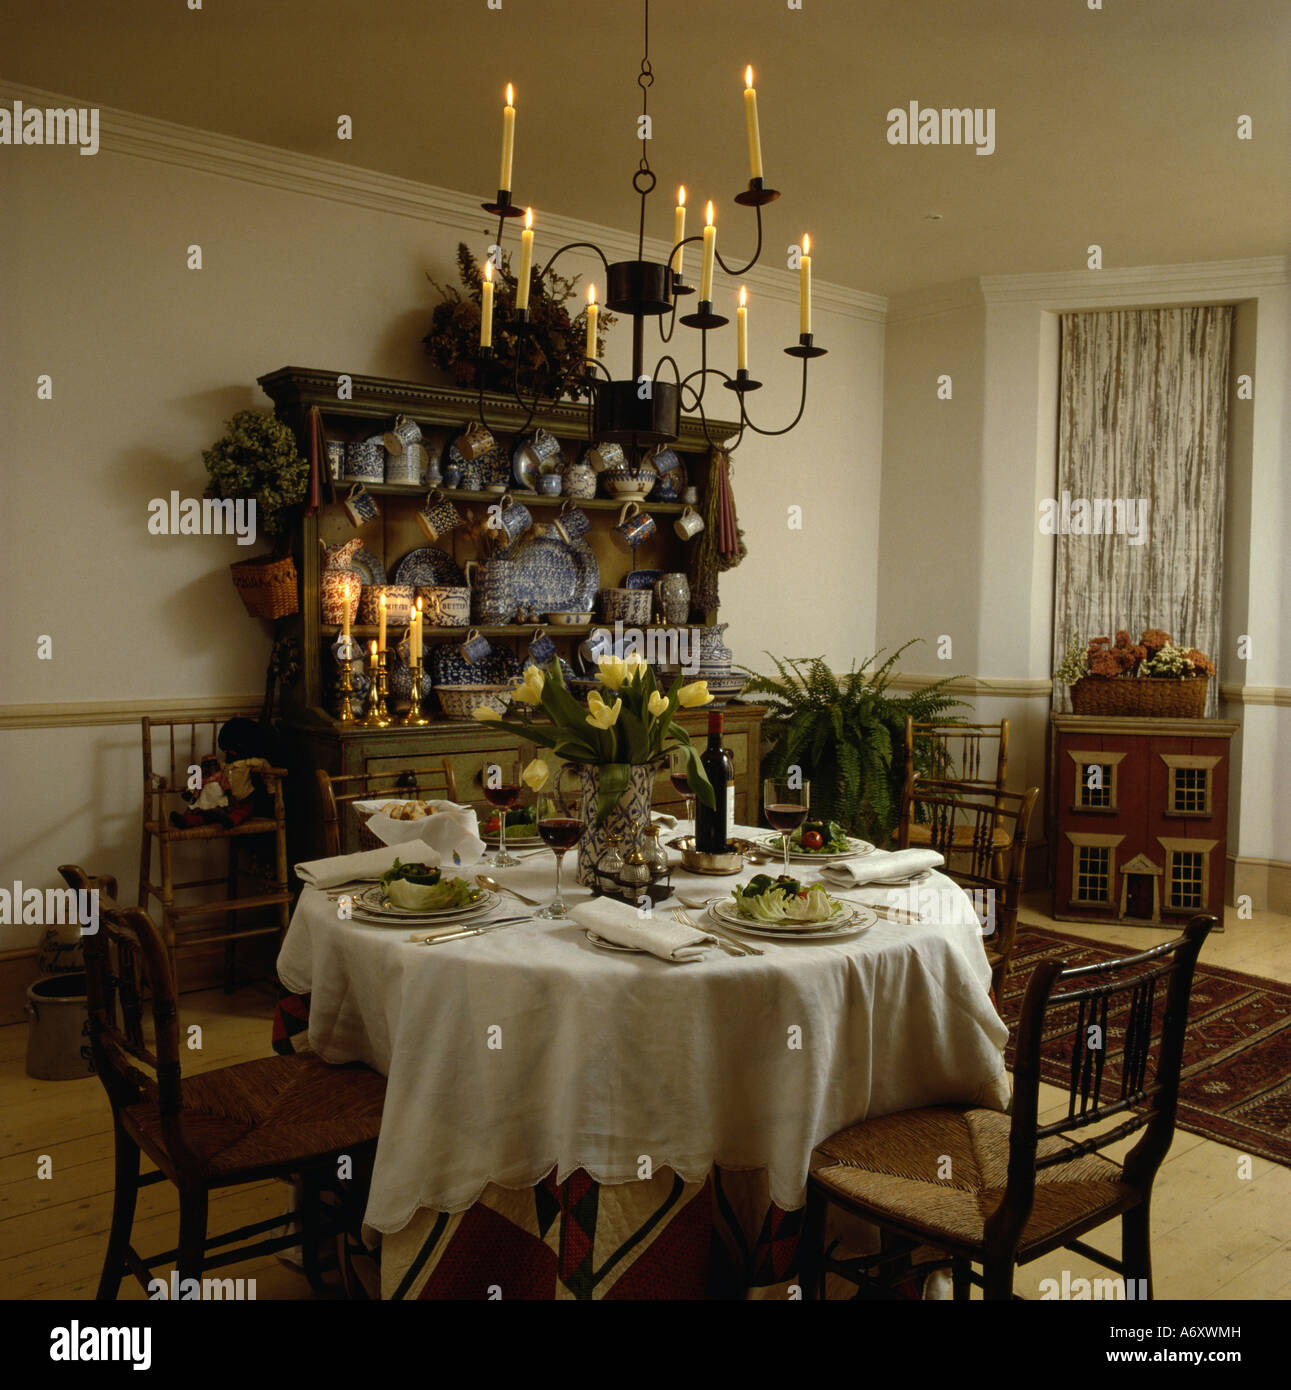 Remarkable Candle Chandelier Above Table Set For Lunch With White Cloth Download Free Architecture Designs Crovemadebymaigaardcom